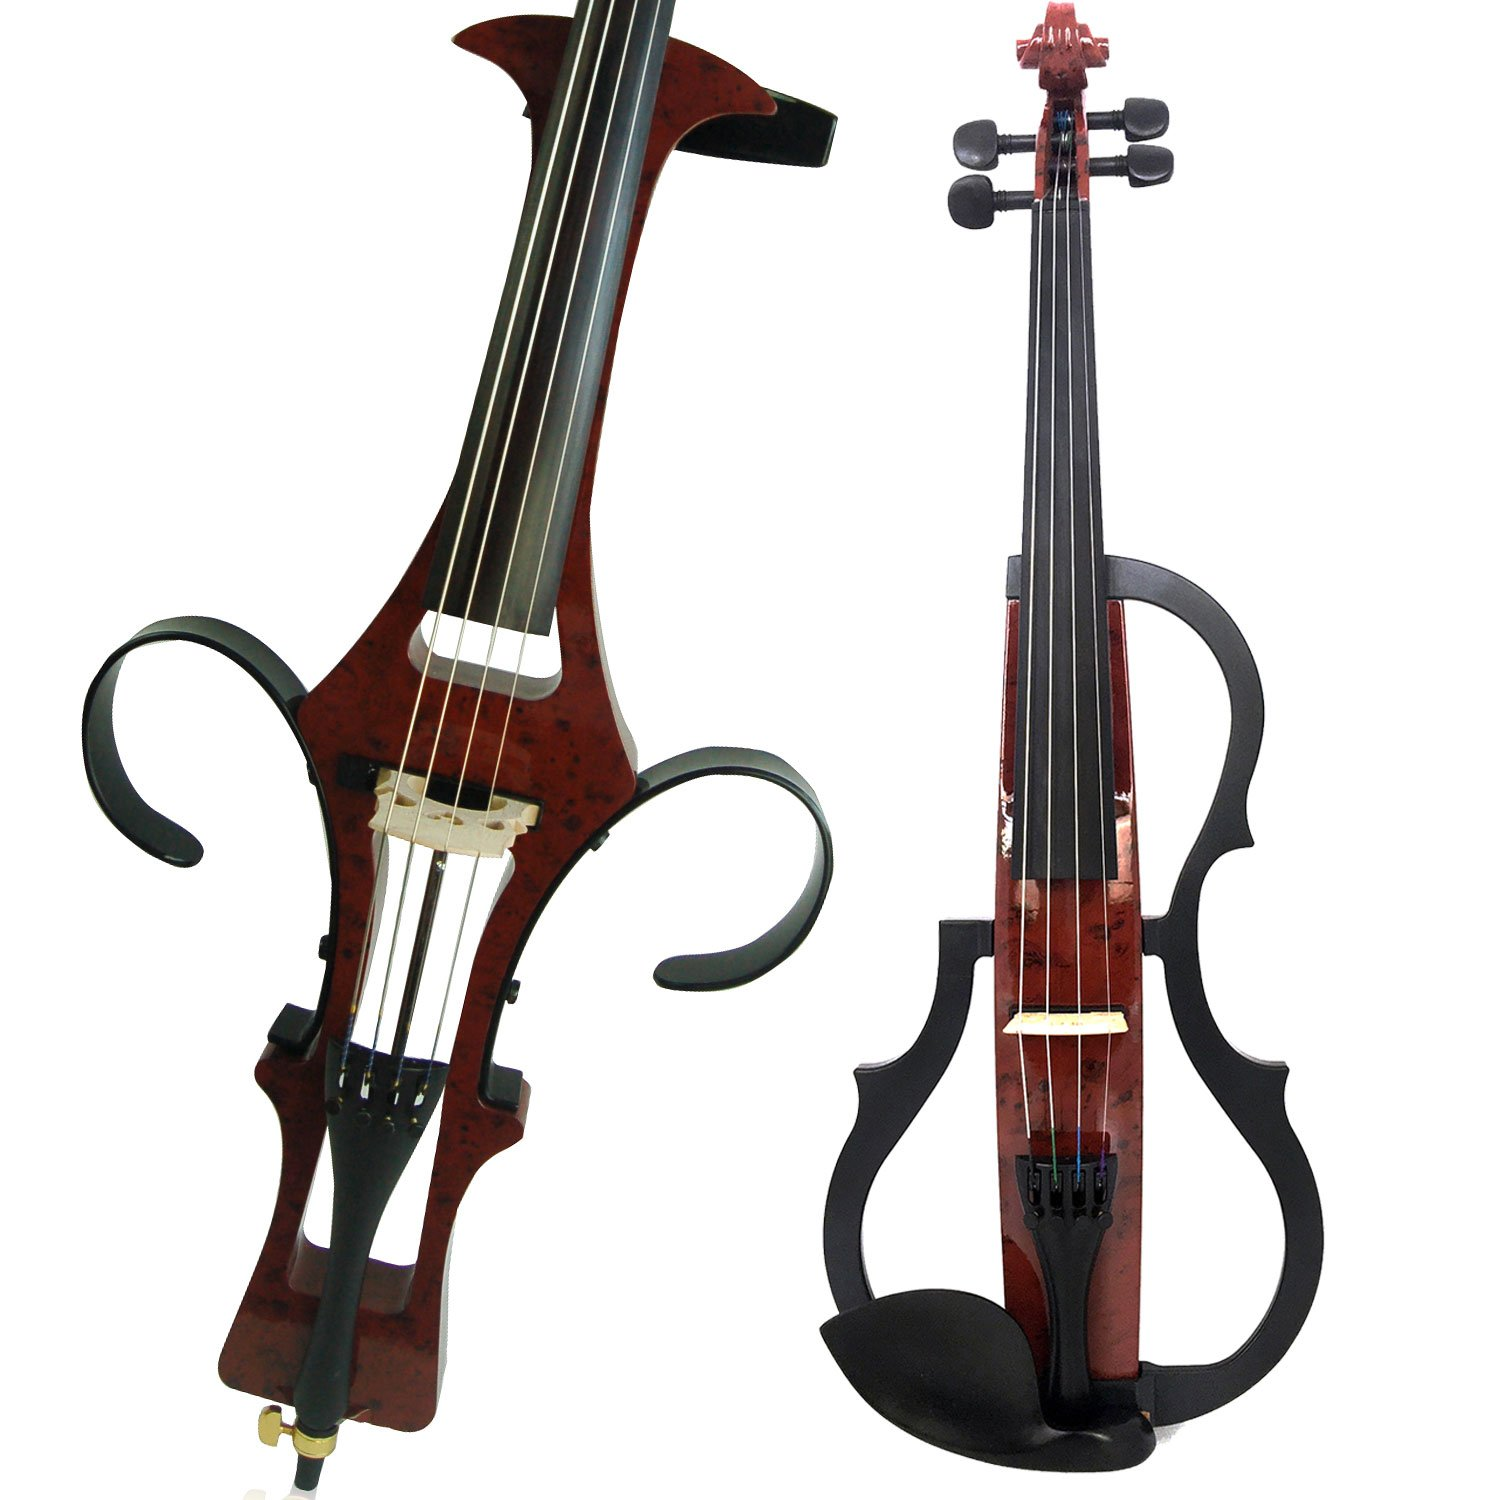 Aliyes Handmade Professional Solid Wood Electric Cello 4/4 Full Size Silent Electric Cello-1601 by Aliyes